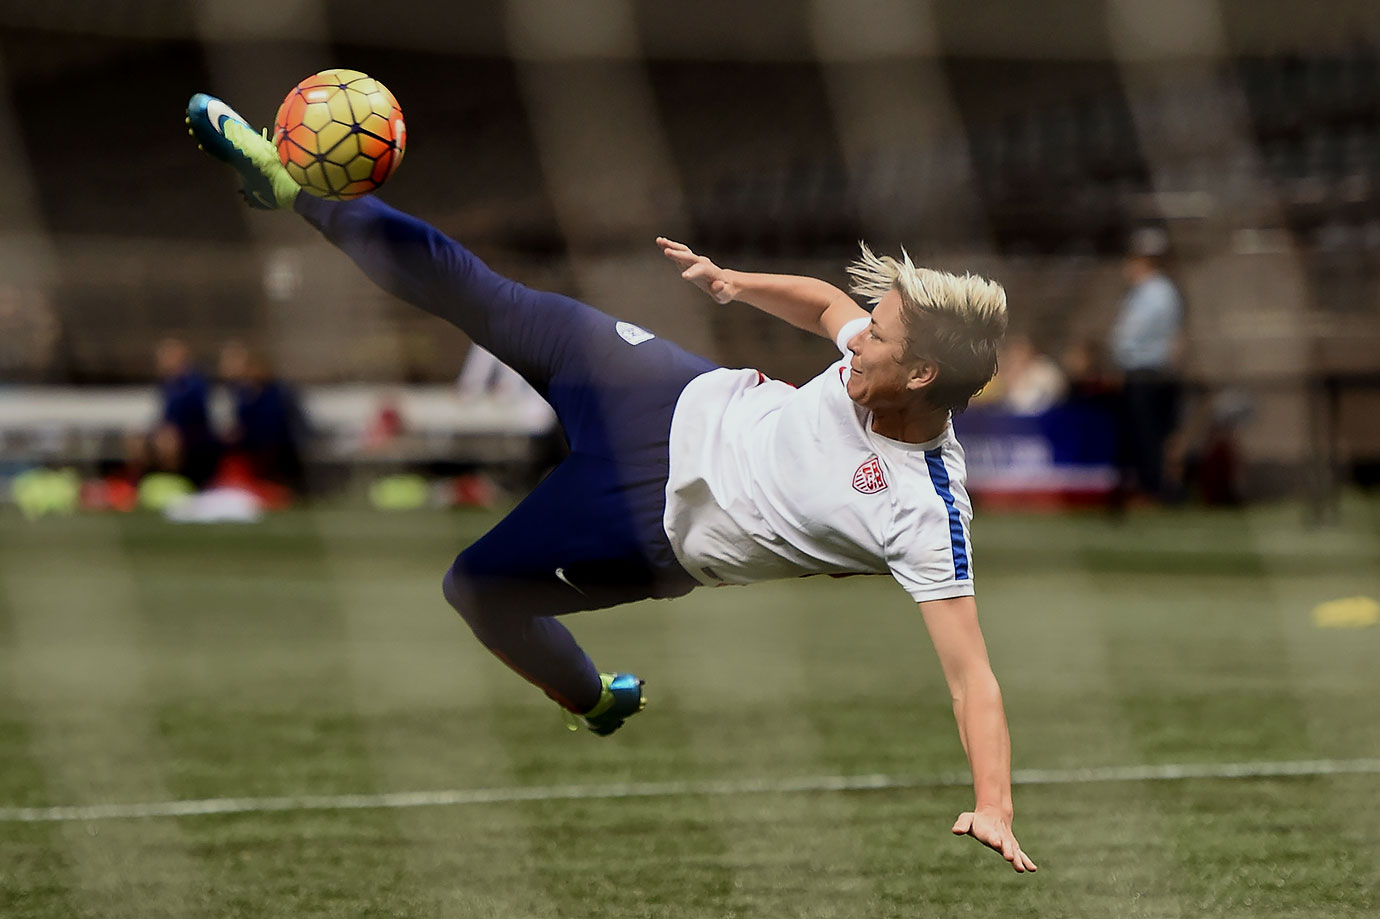 Dec. 15, 2015 — USA vs. China (warmups)